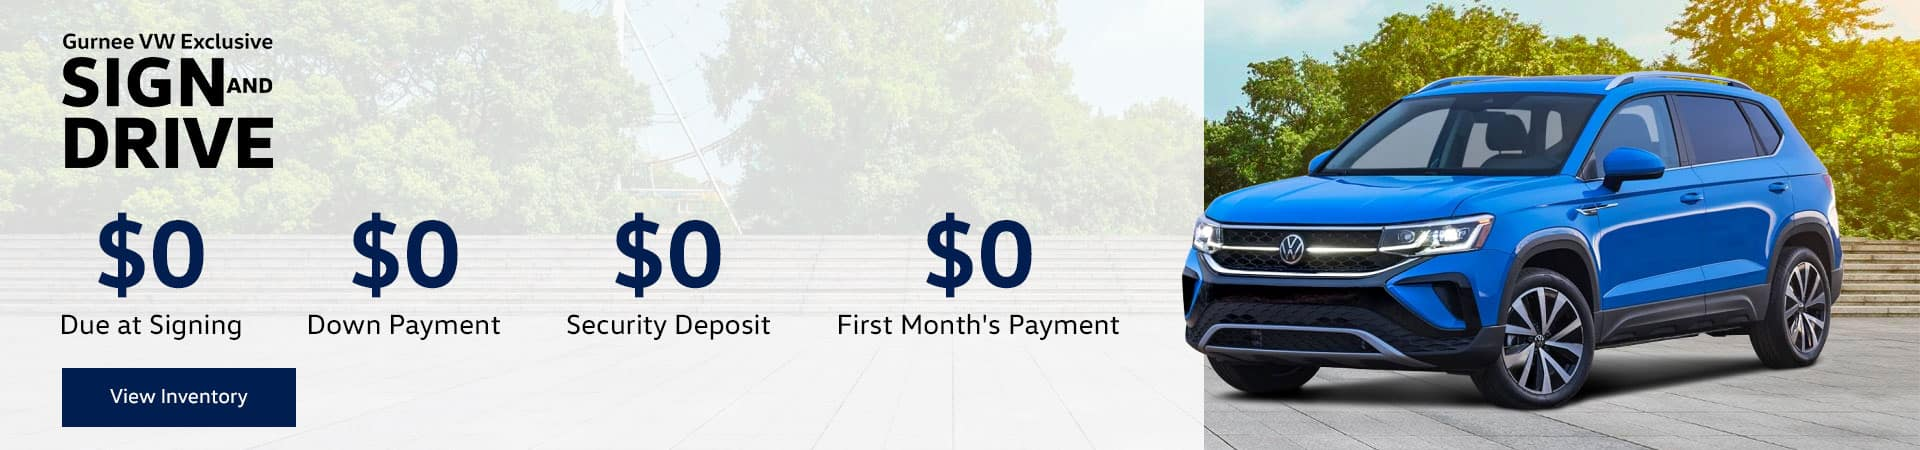 SIGN AND DRIVE $0 Due at Signing $0 Down Payment $0 Security Deposit $0 First Month's Payment